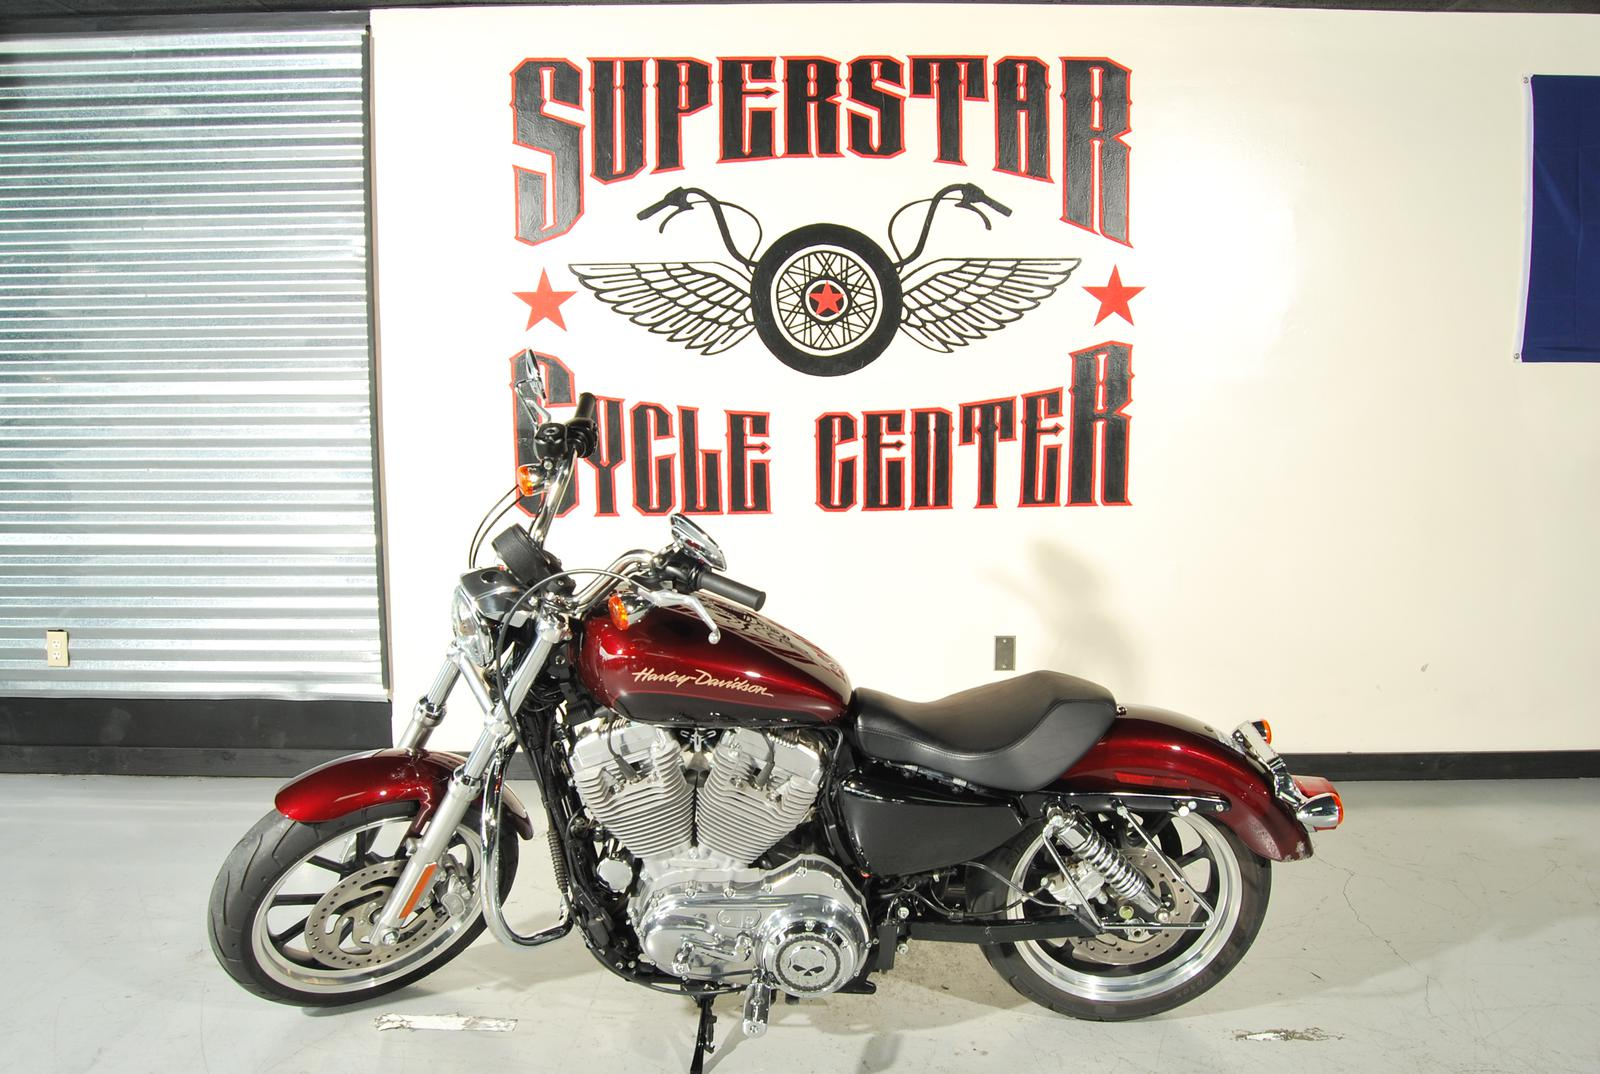 2014 Harley Davidson Xl883l Superlow For Sale In Independence Mo Wire Harness A 73 Ironhead 3354 3